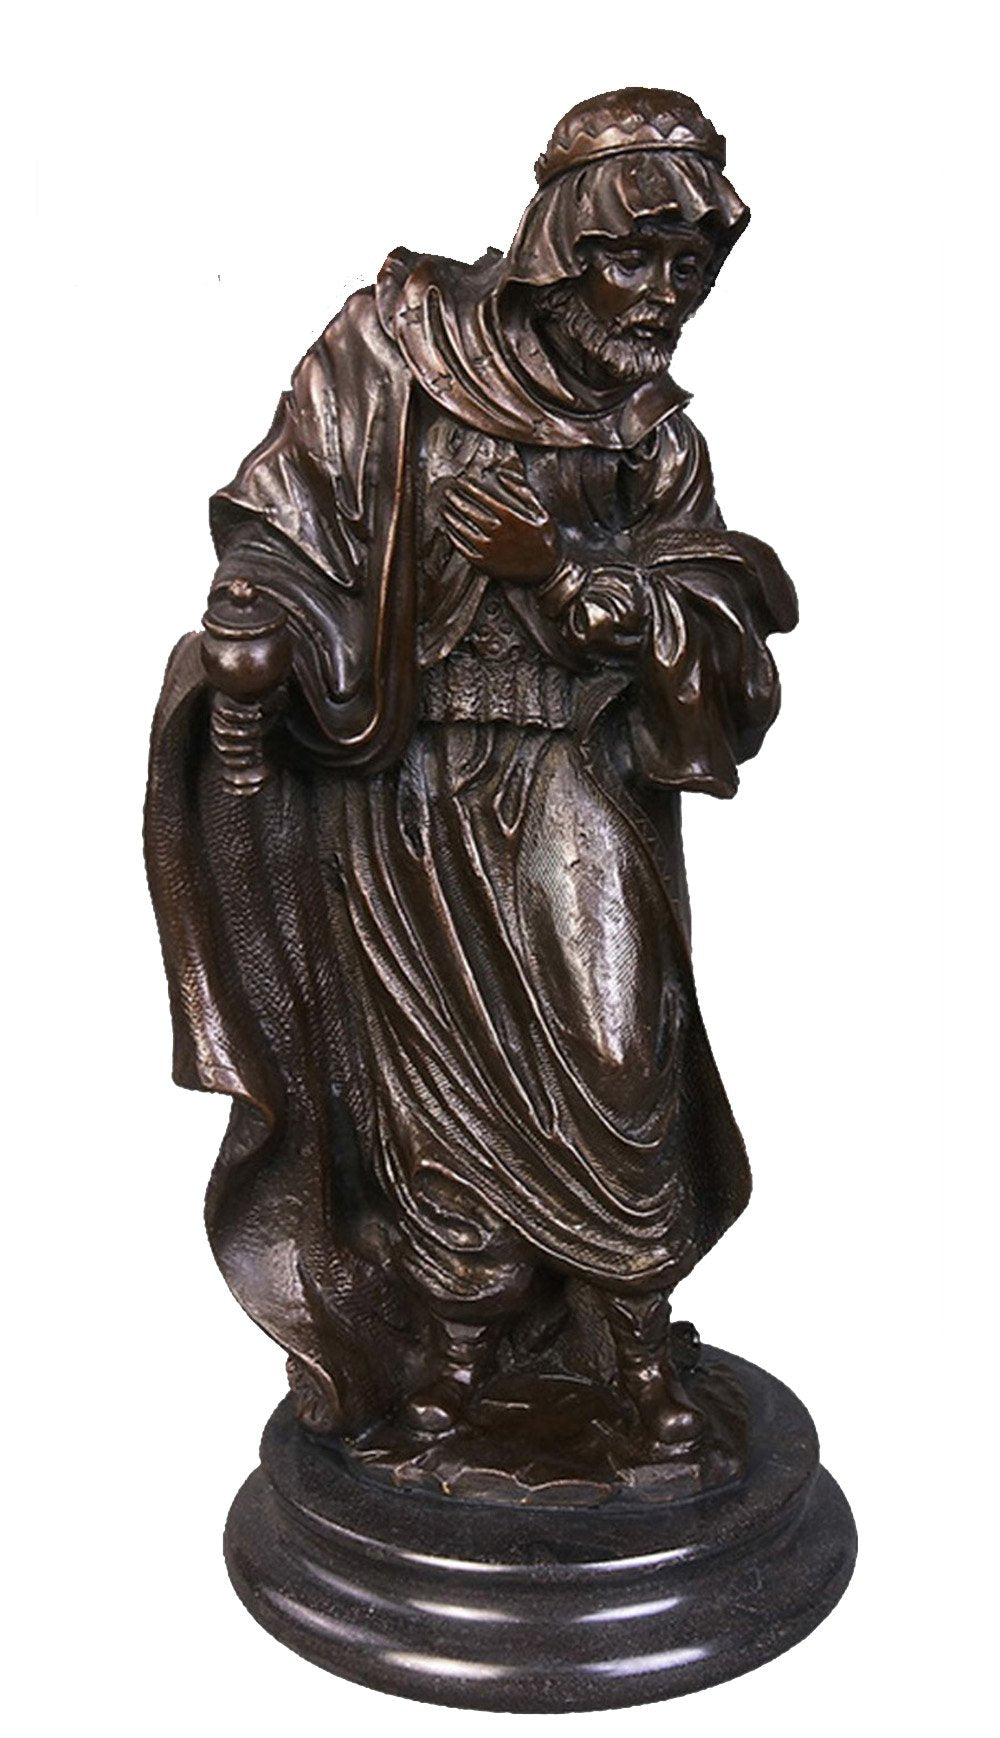 TPY-063 bronze sculpture